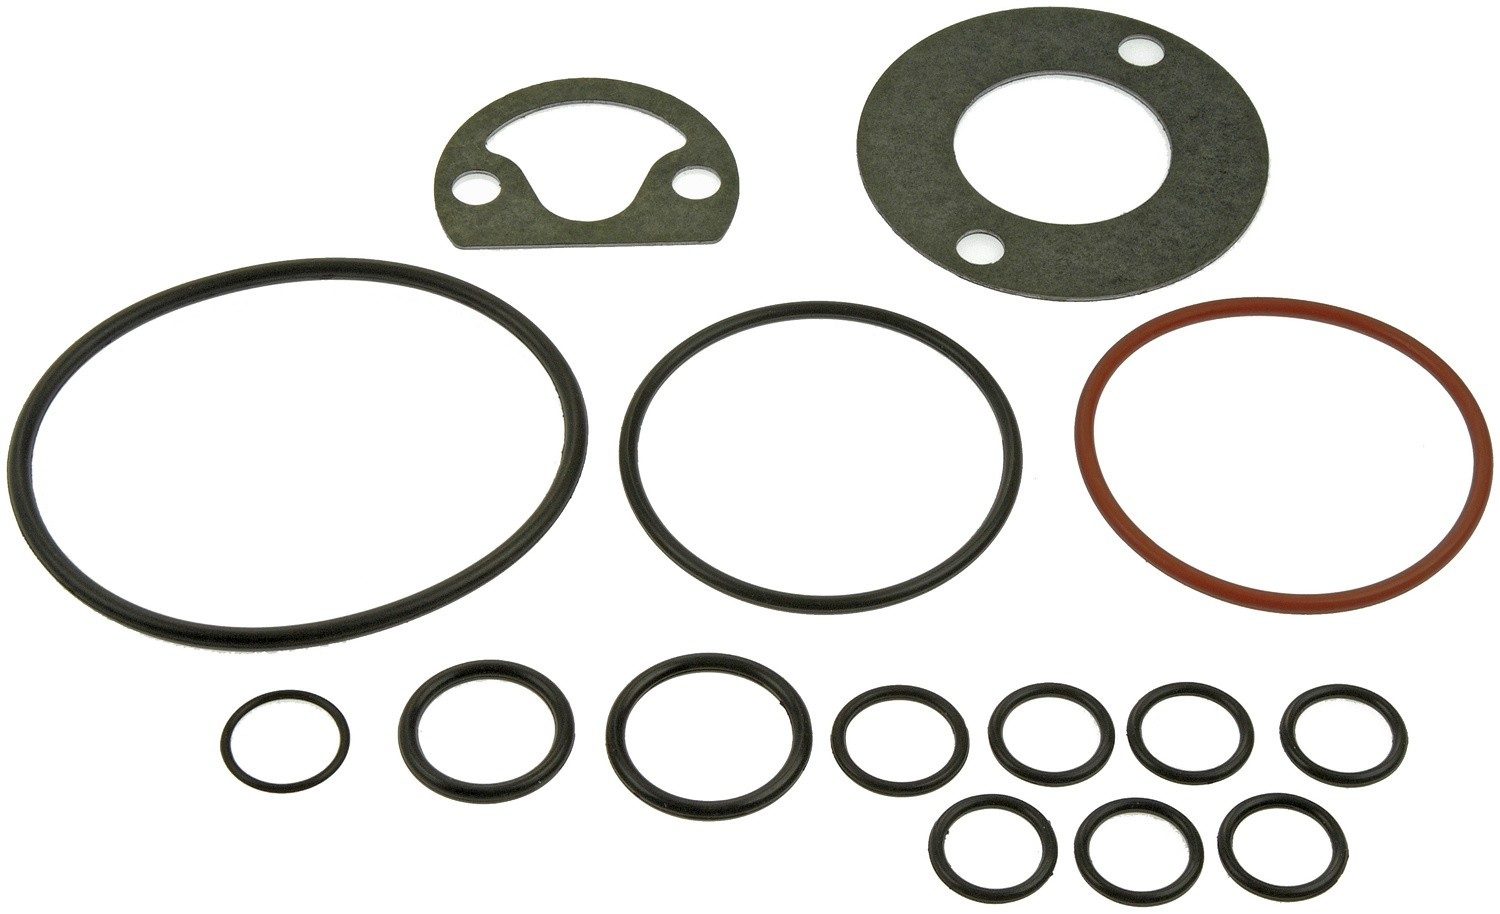 DORMAN - HELP - Engine Oil Filter Adapter O-ring - RNB 82560